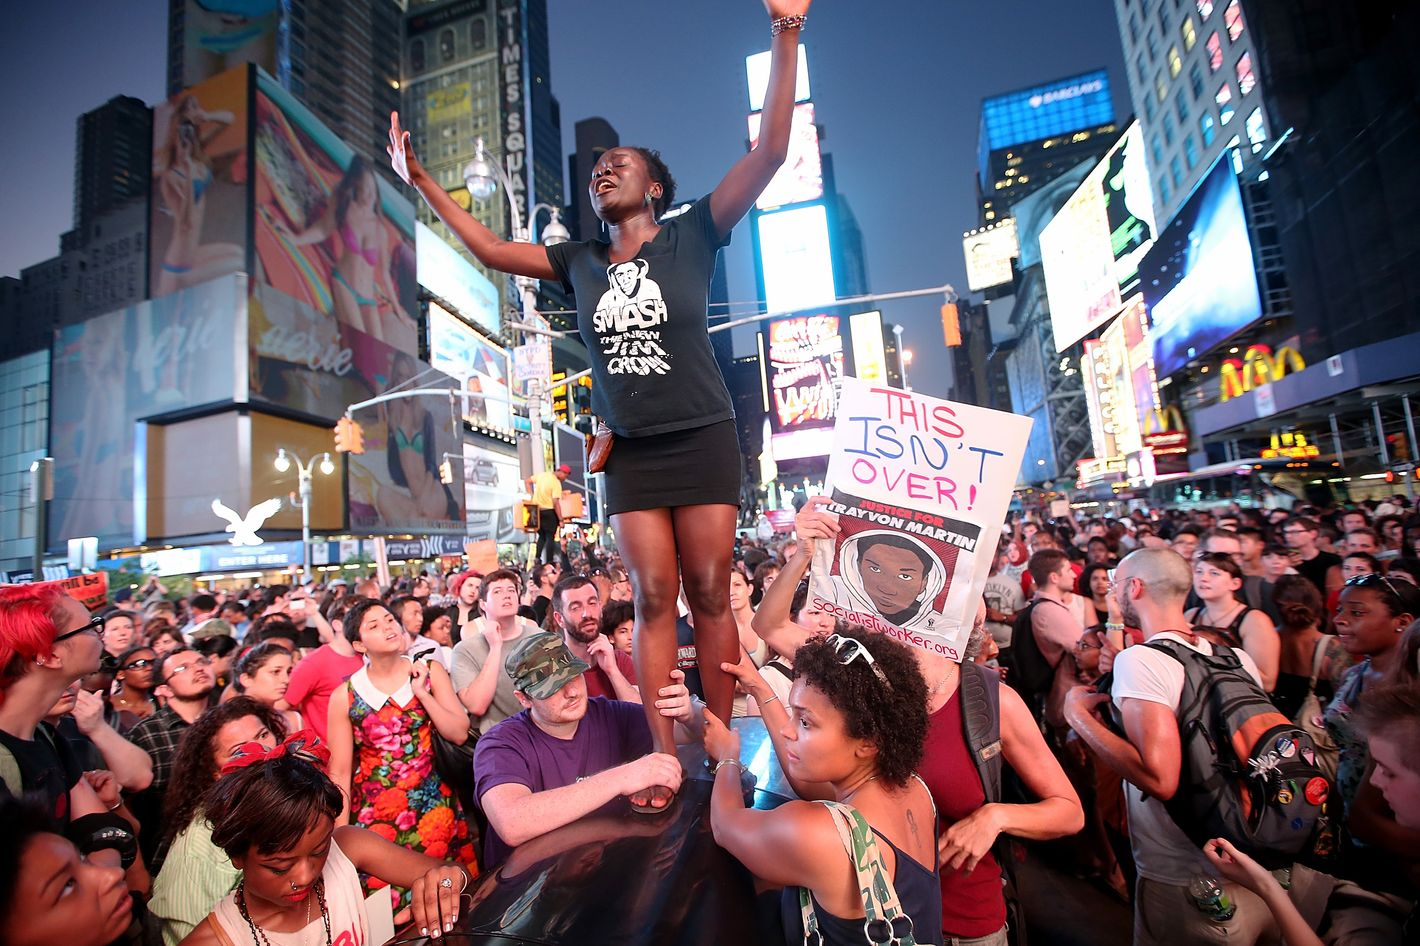 NEW YORK, NY - JULY 14:  Trayvon Martin supporters rally in Times Square while blocking traffic after marching from a rally for Martin in Union Square in Manhattan on July 14, 2013 in New York City. George Zimmerman was acquitted of all charges in the shooting death of Martin July 13 and many protesters questioned the verdict.  (Photo by Mario Tama/Getty Images)